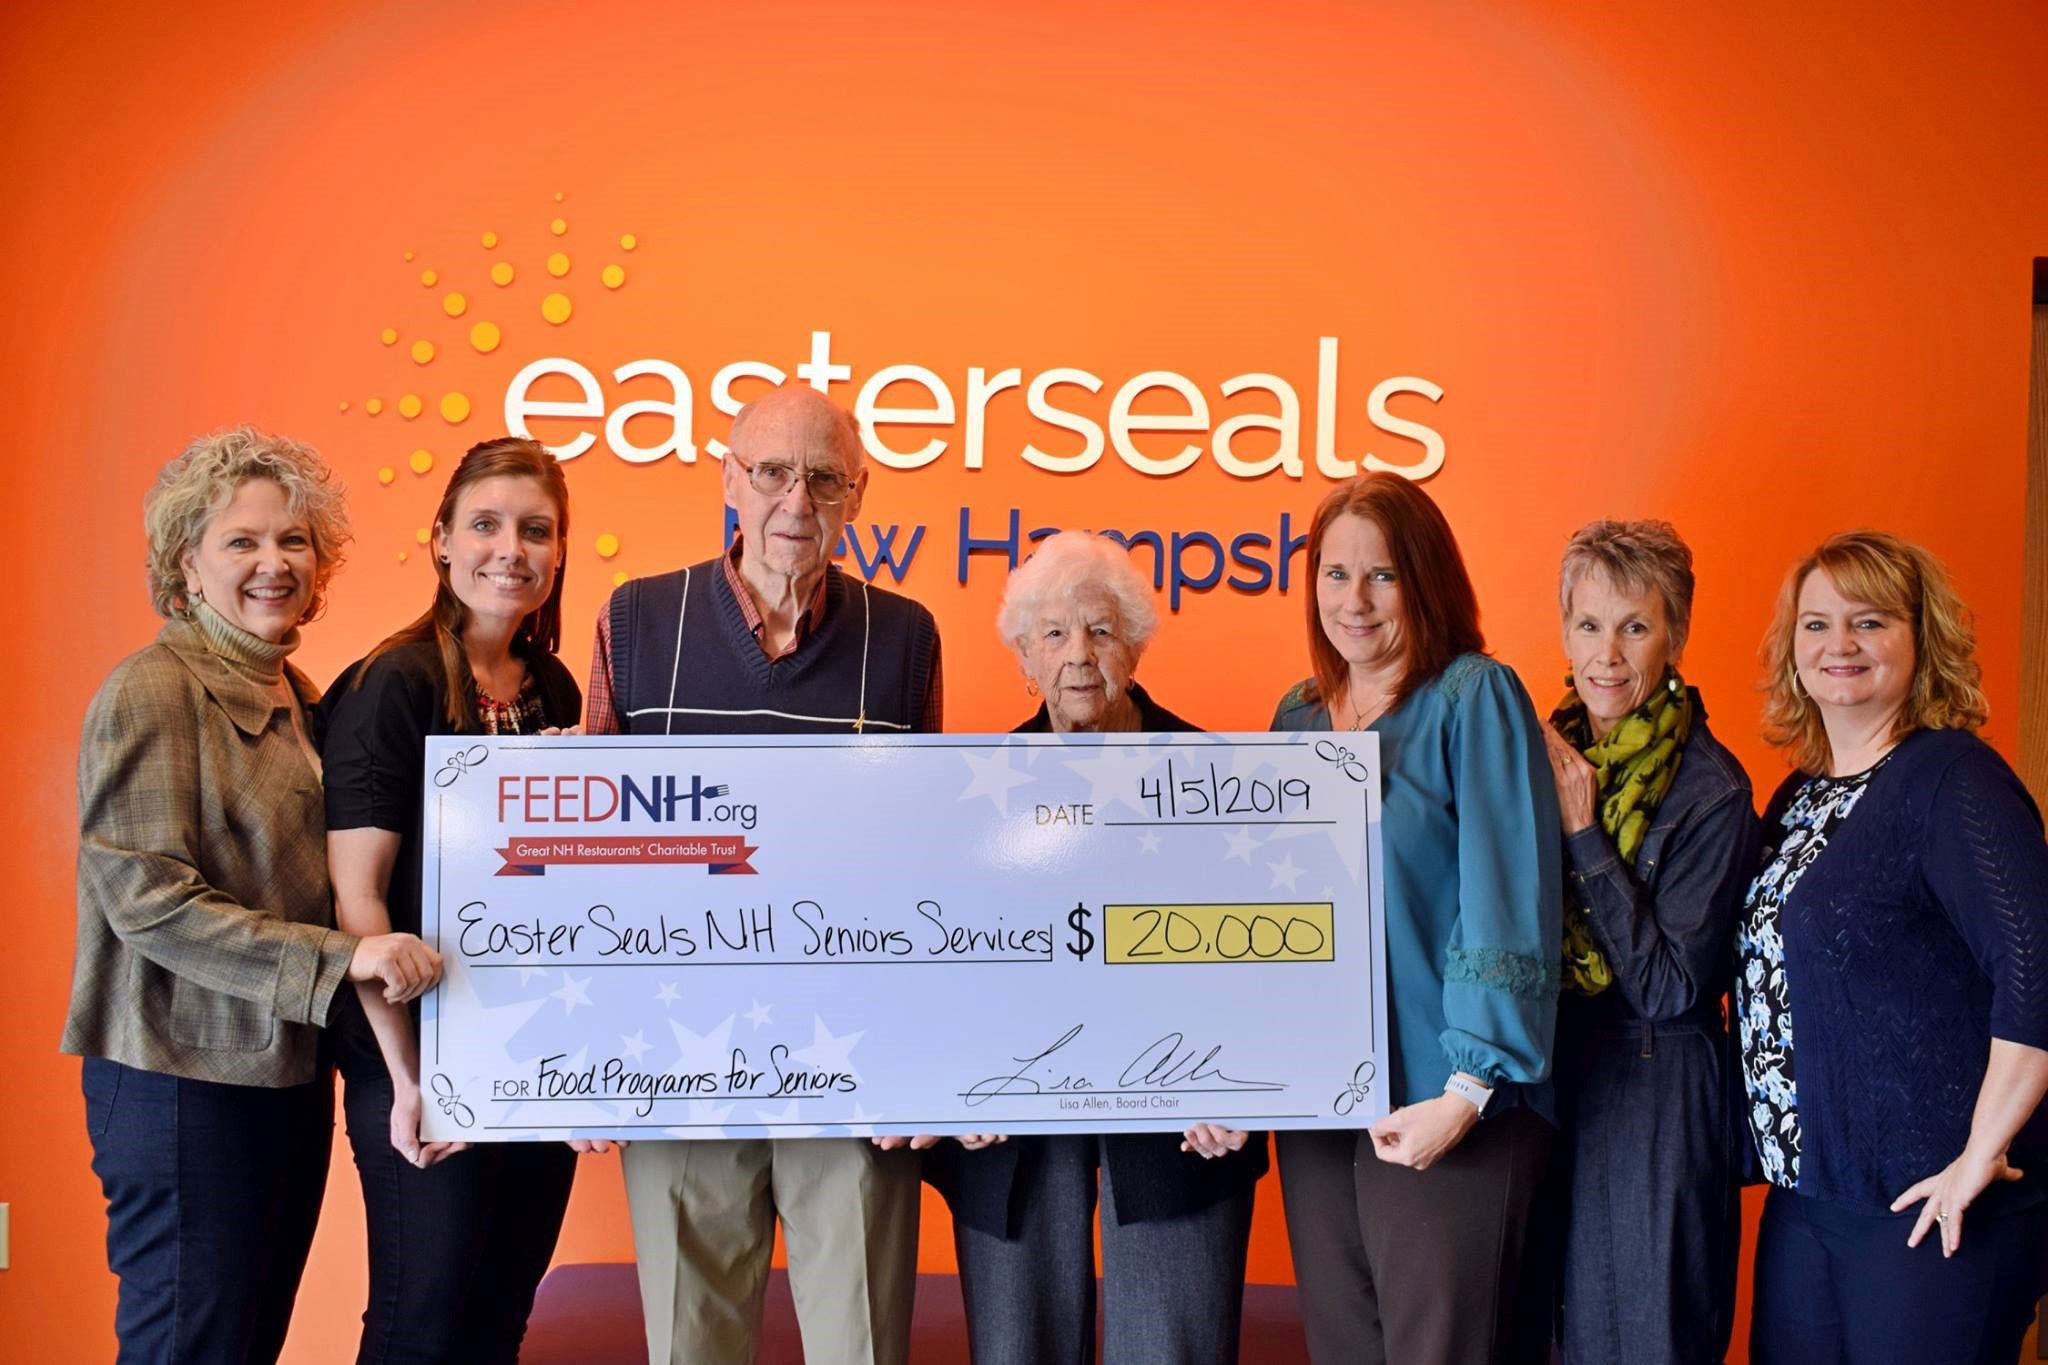 FEEDNH.org has benefited numerous deserving non-profits that support NH's Families, Elderly, Education, & Disadvantaged